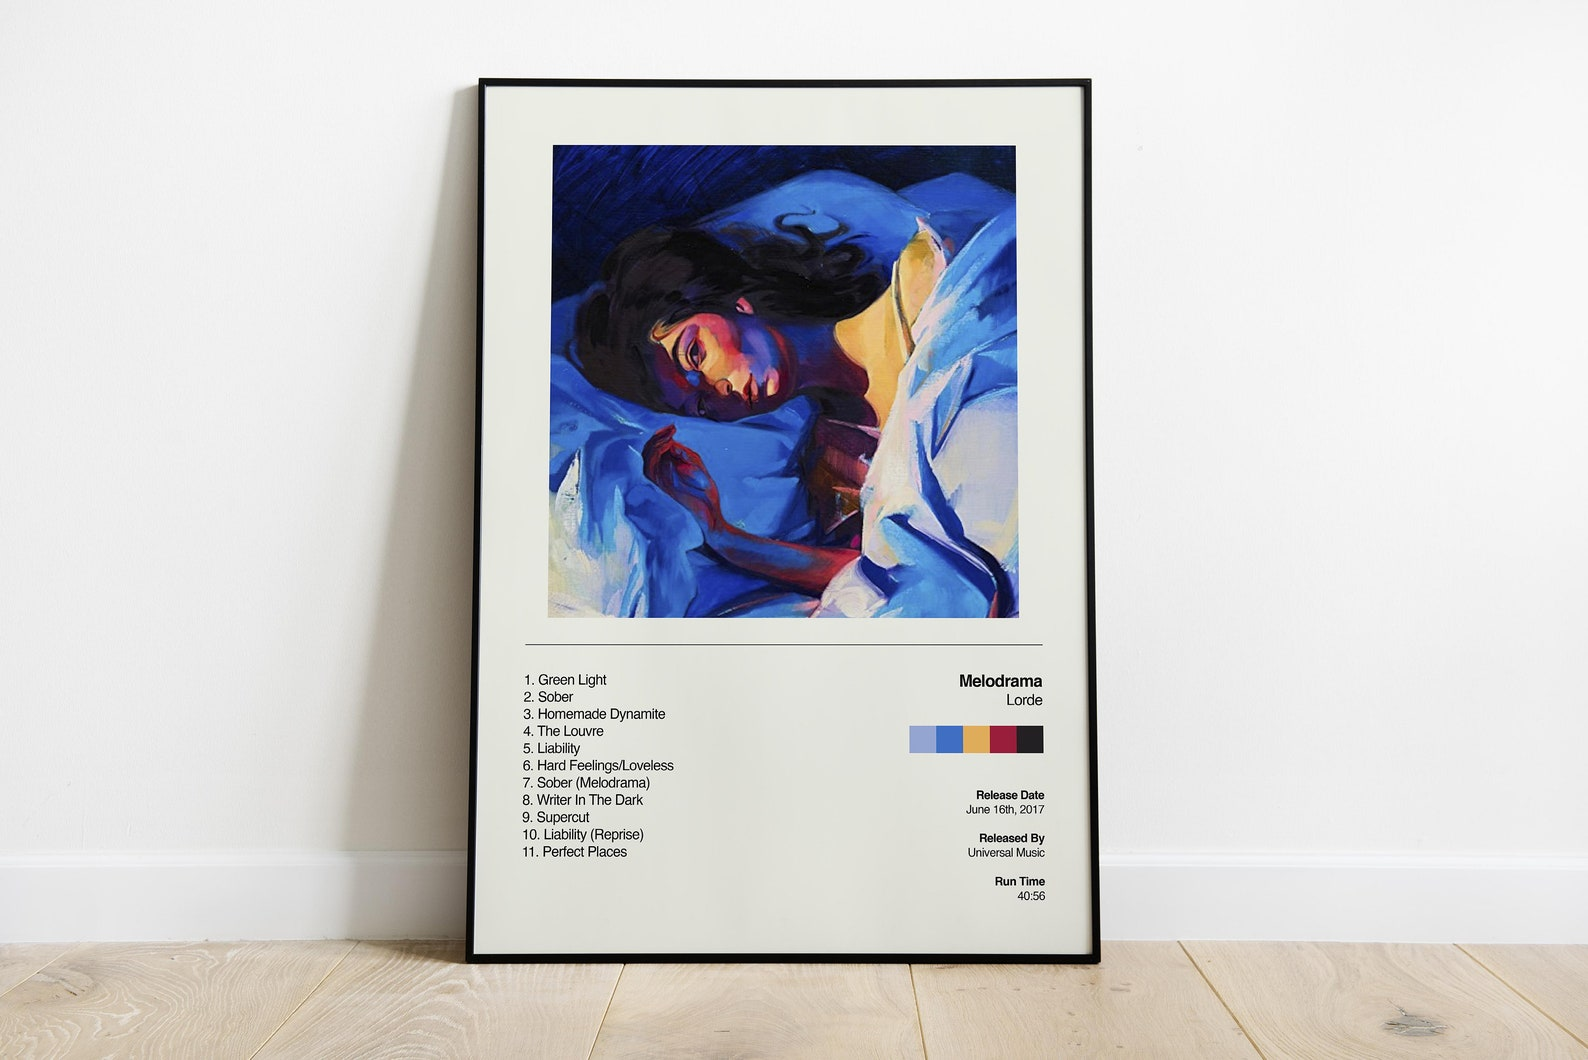 Lorde Poster Melodrama Album Cover Poster Music Poster   Etsy